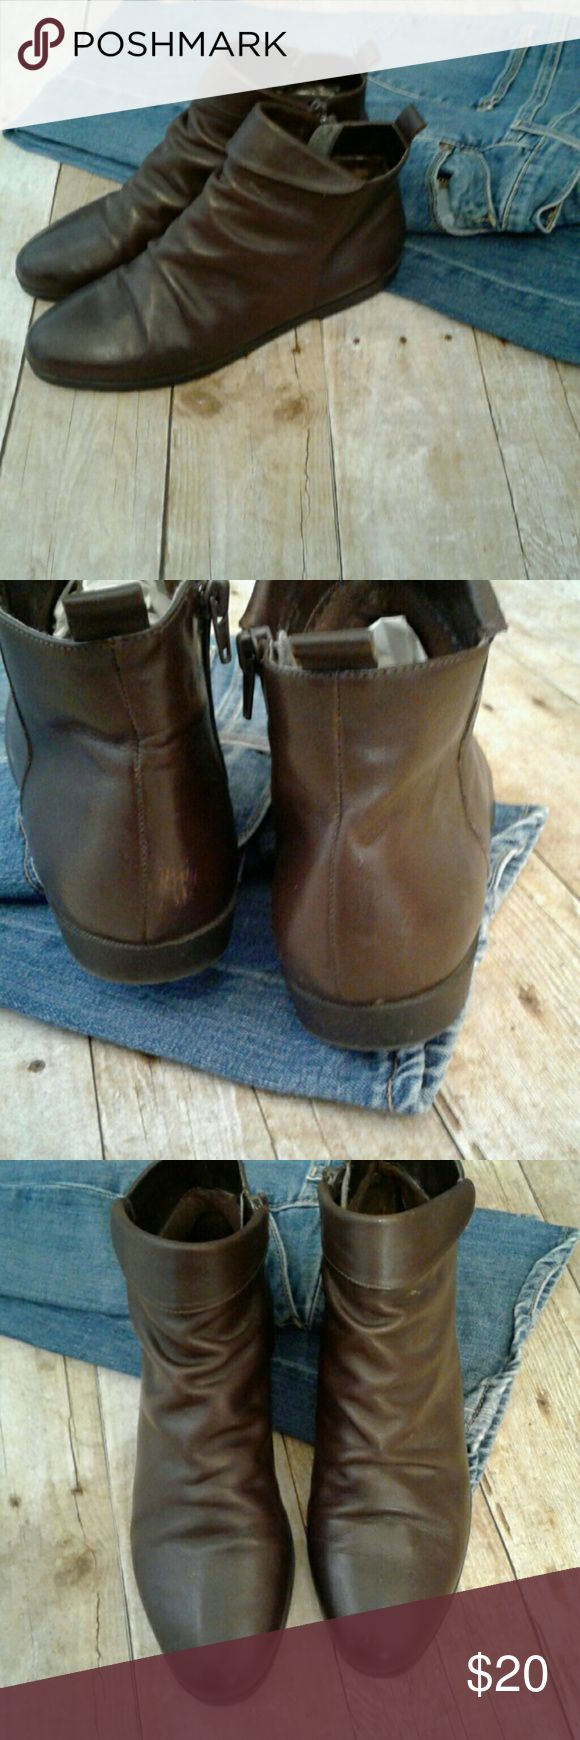 Brown Ankle Boots Size 8.5. Dark brown zips up the side. Zippers work fine.  Leather boots with rubber soles. Preowned an in Great condition.  Lightly worn a few times. Thanks! Shoes Ankle Boots & Booties